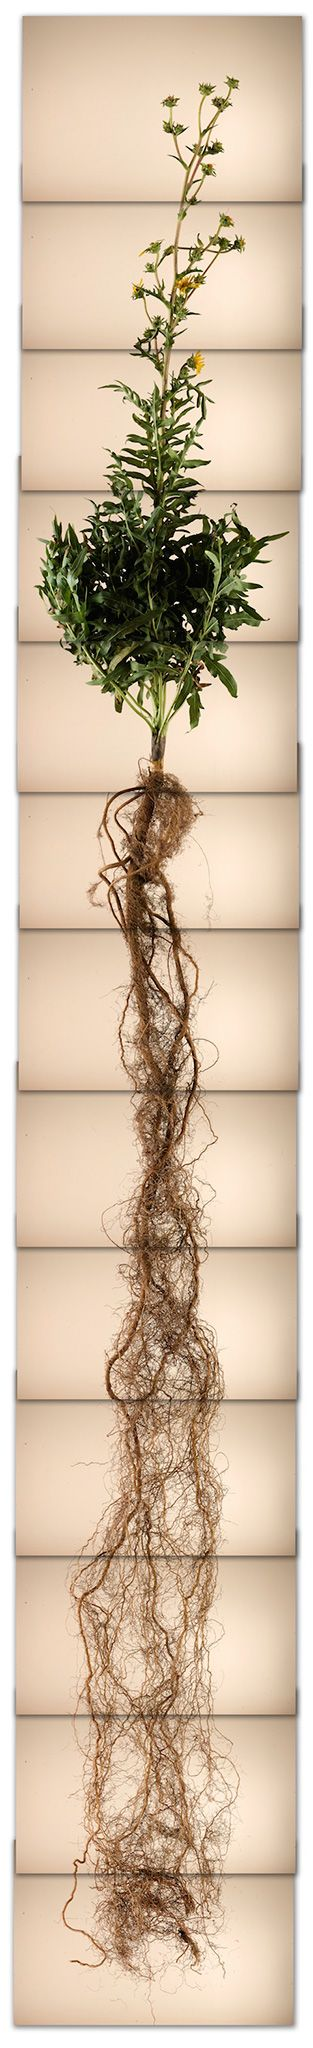 Digging Deep Reveals the Hidden World of Roots - Vertical panorama of a compass plant and its long root structure